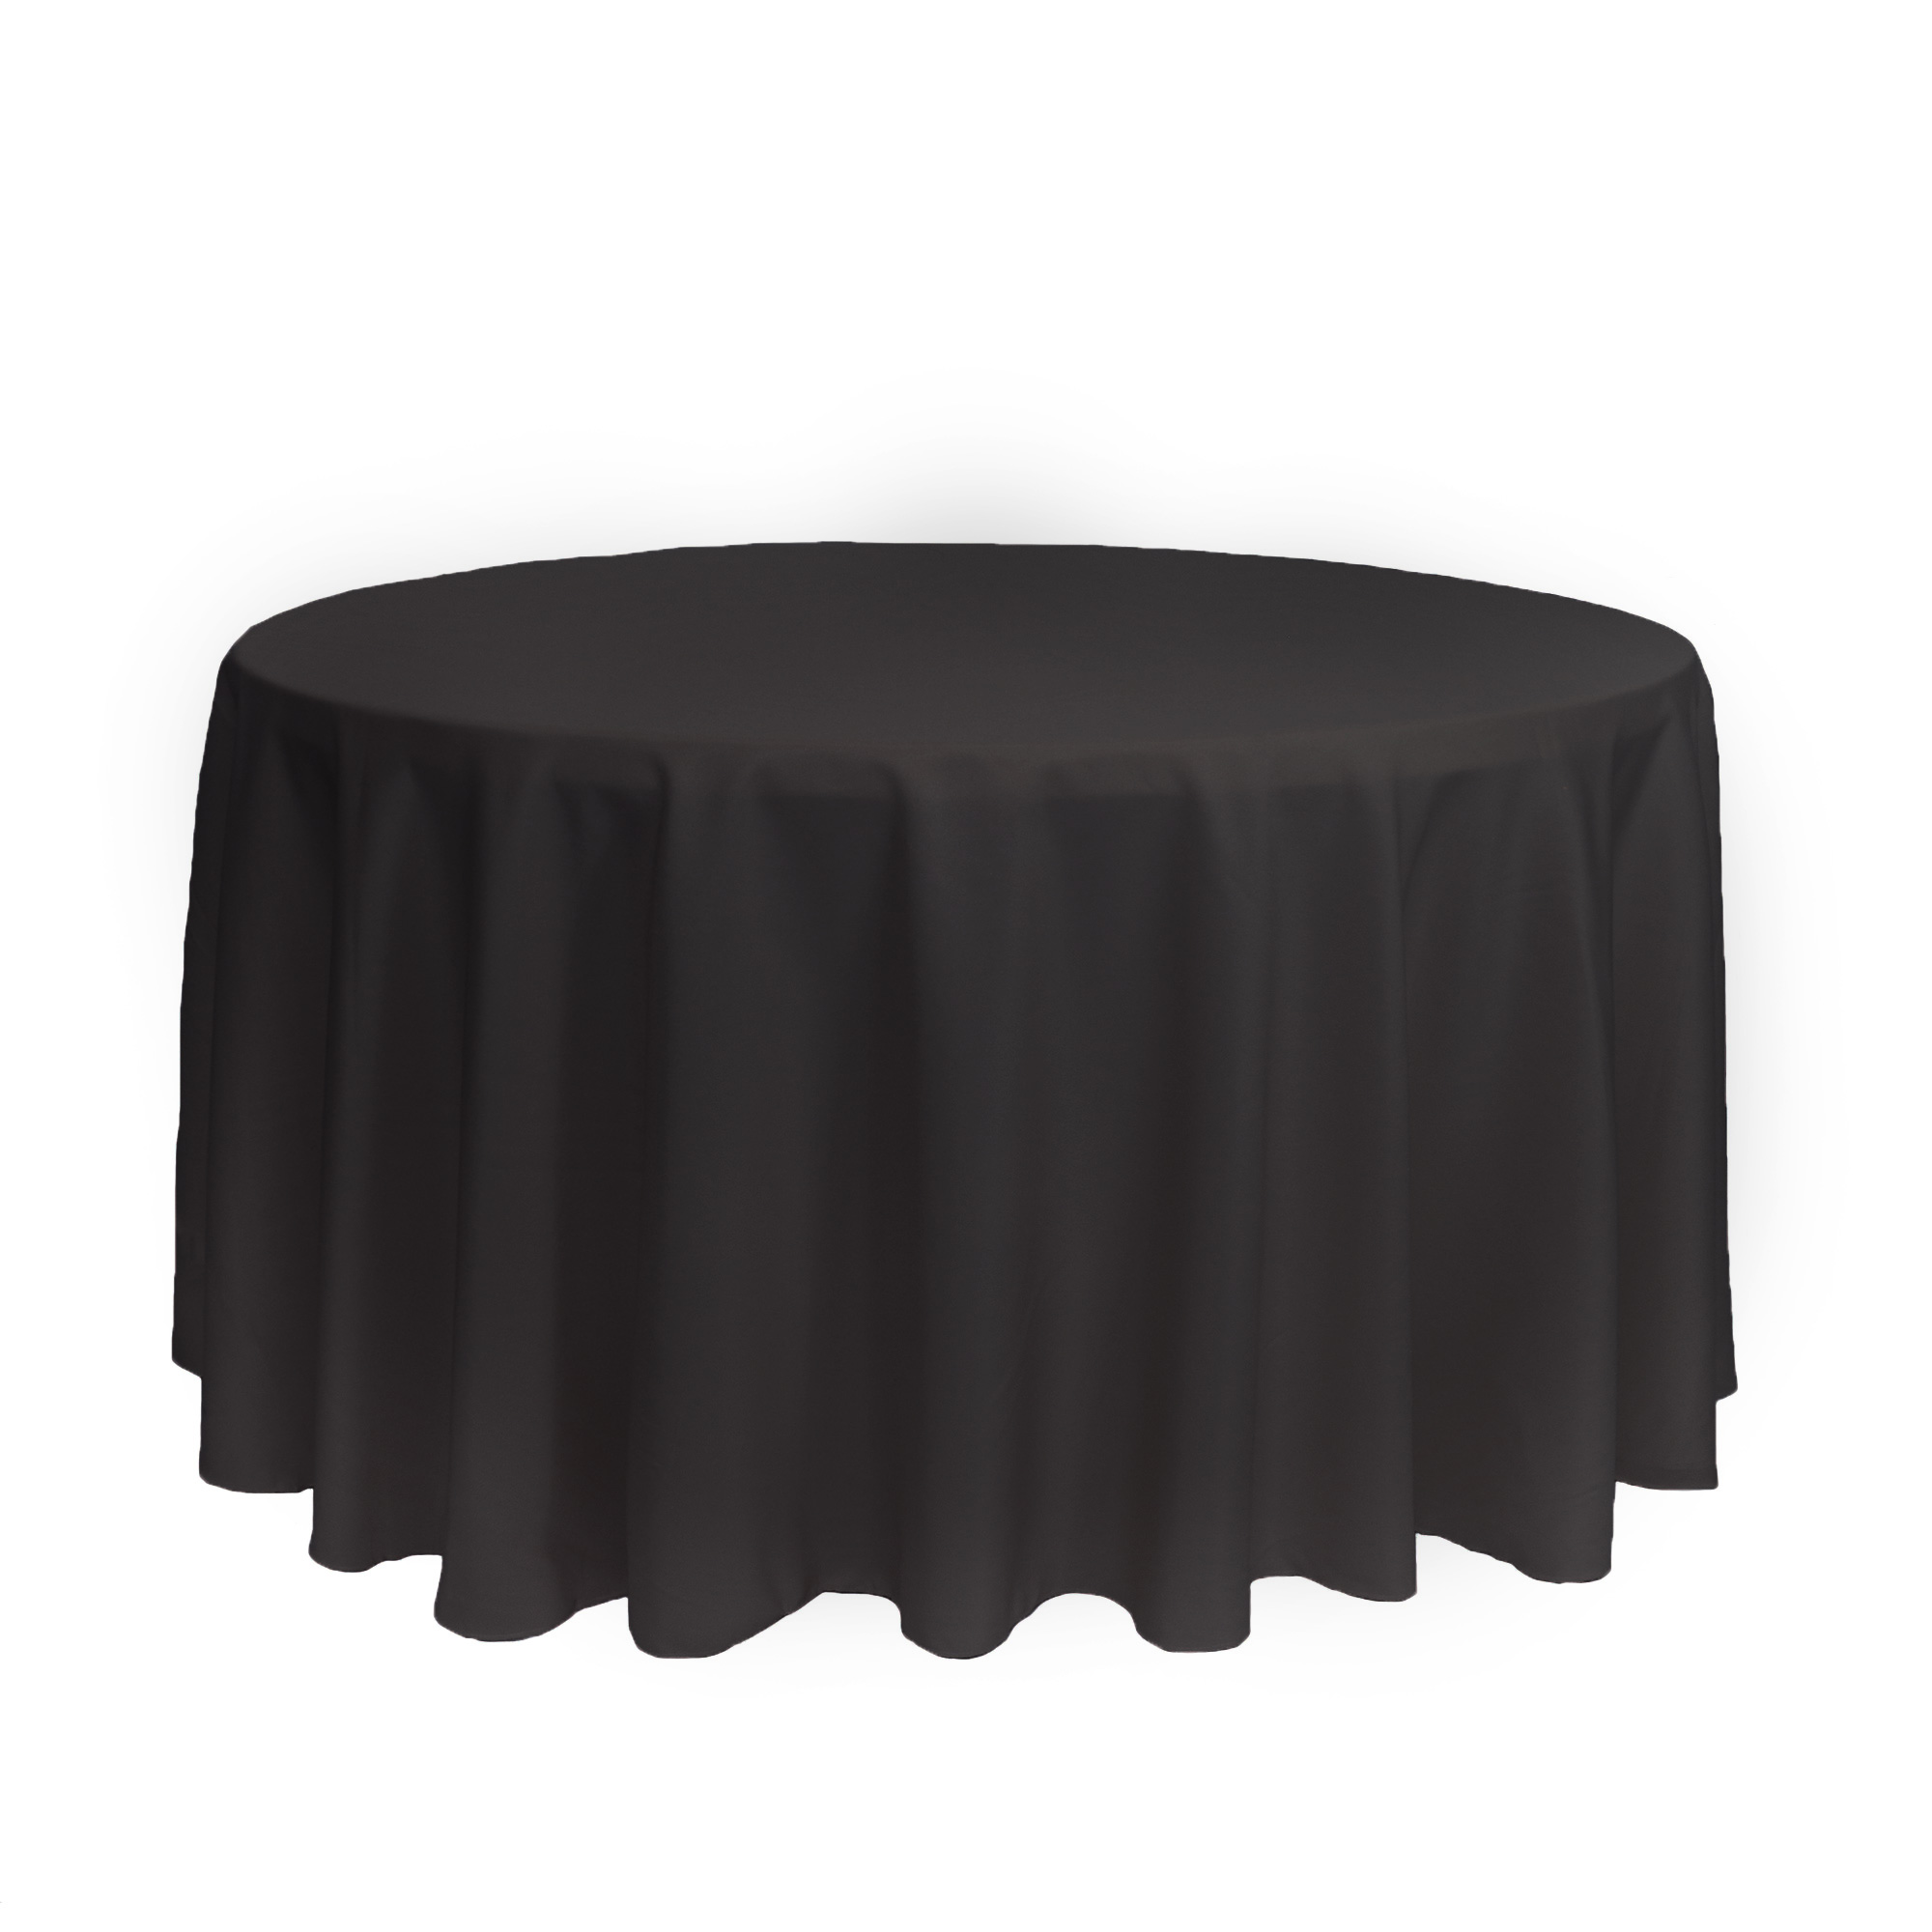 120 Inch Round Polyester Tablecloth Black Your Chair Covers Inc